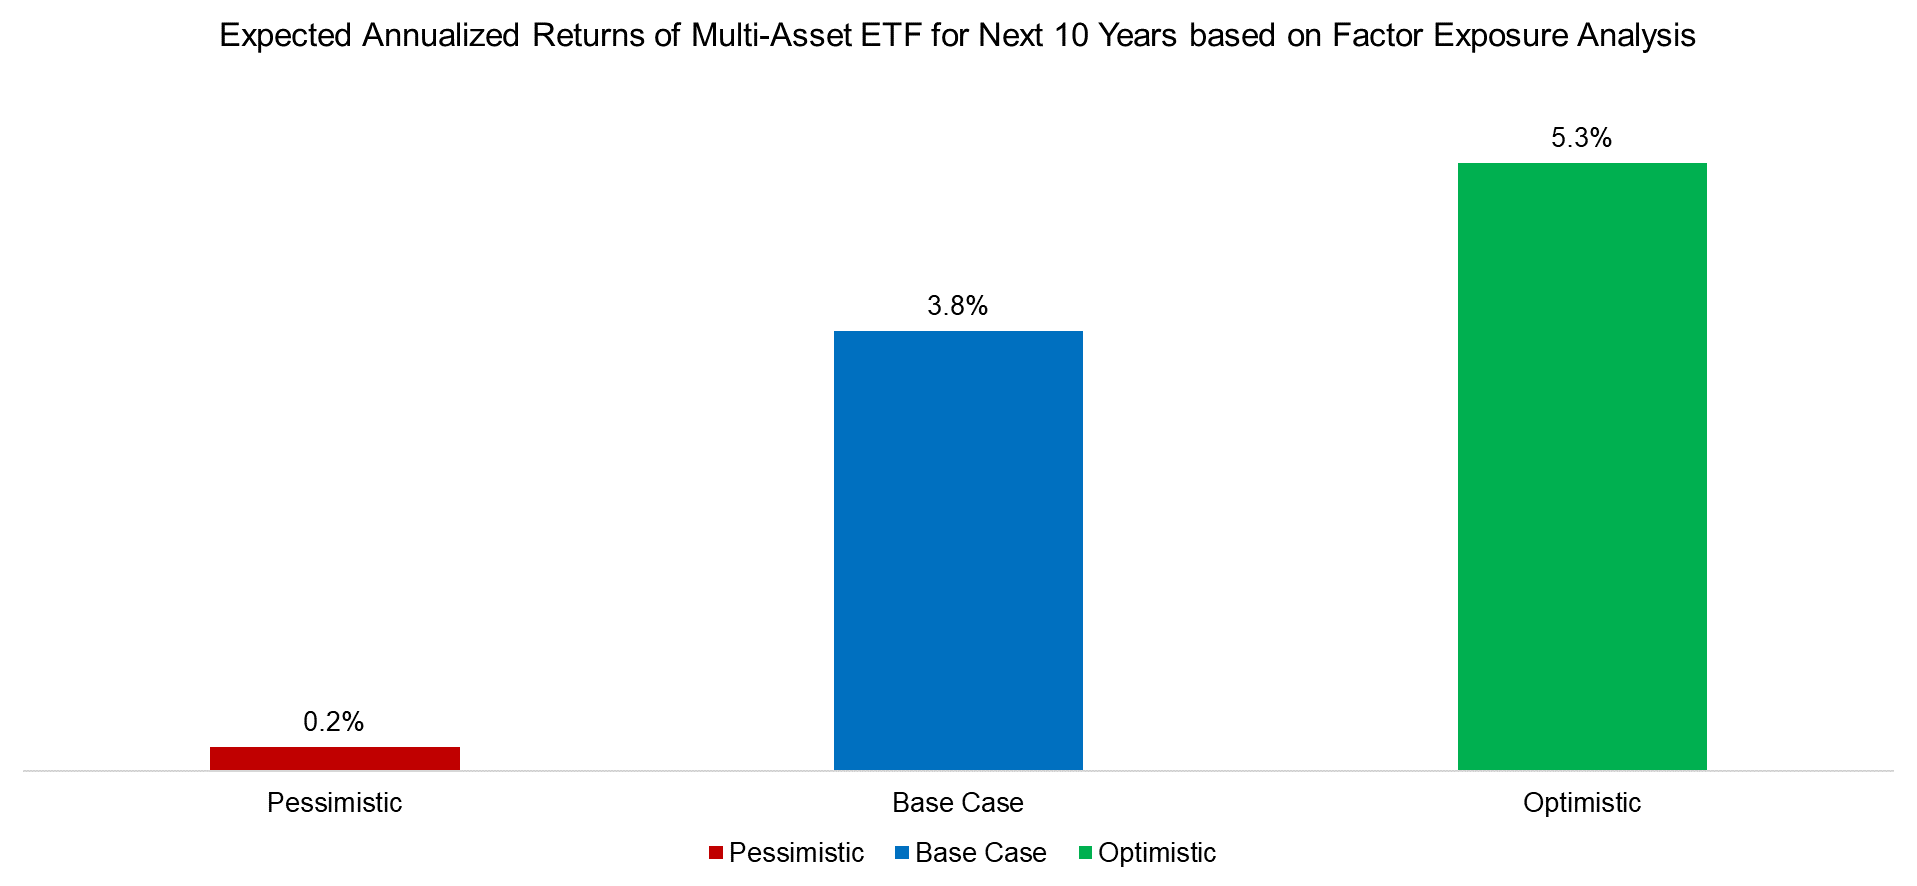 Expected Annualized Returns of Multi-Asset ETF for Next 10 Years based on Factor Exposure Analysis